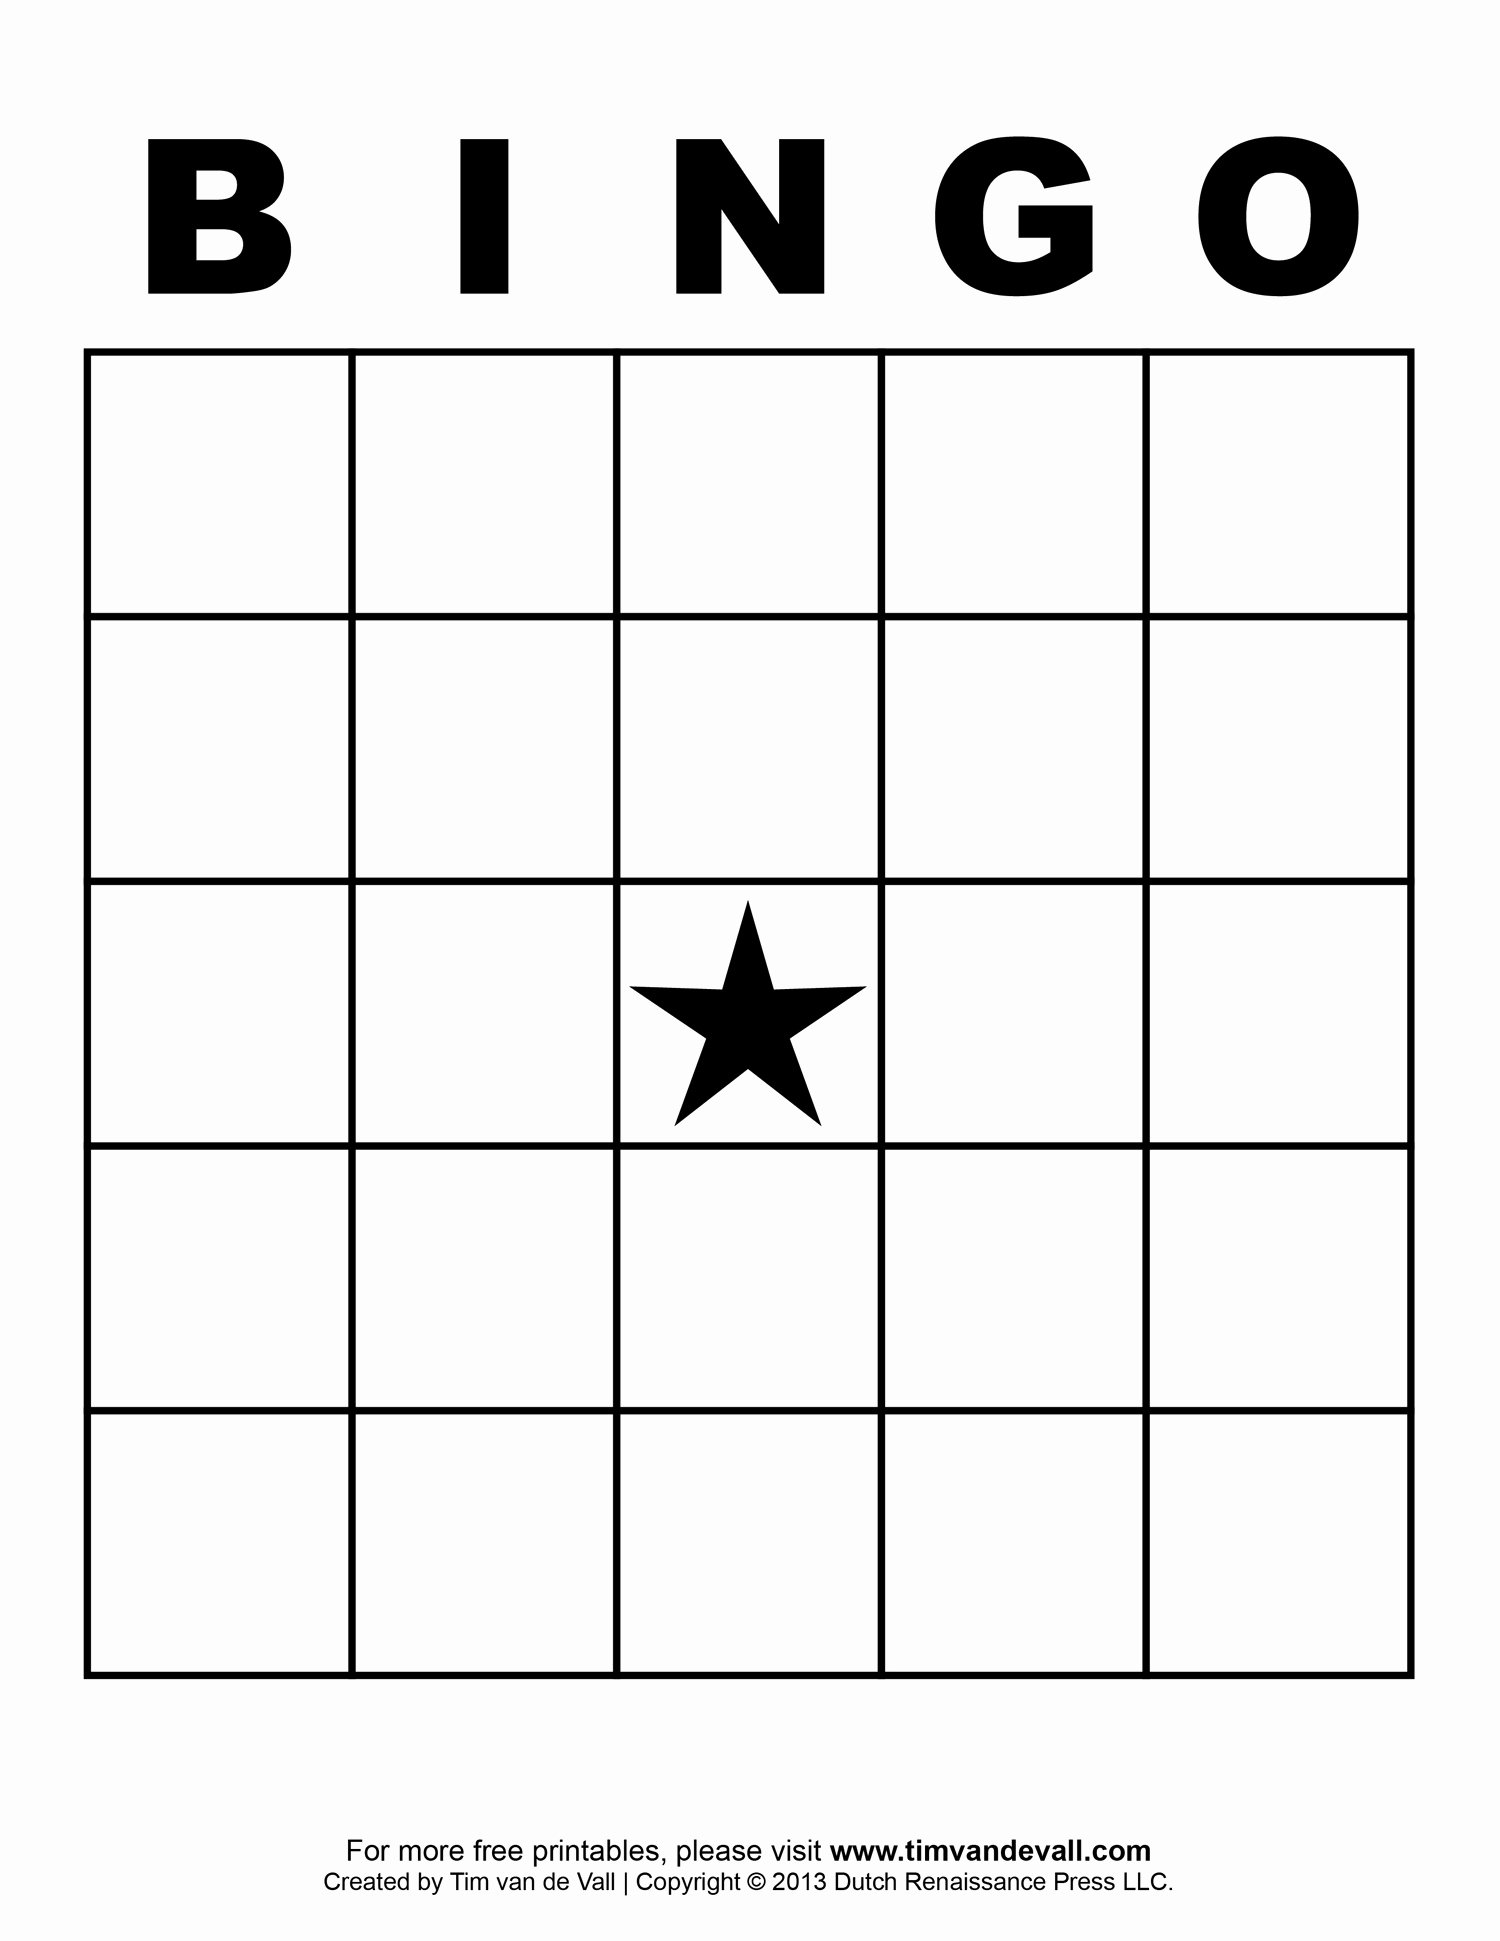 Free Printable Bingo Cards Pdfs with Numbers and tokens